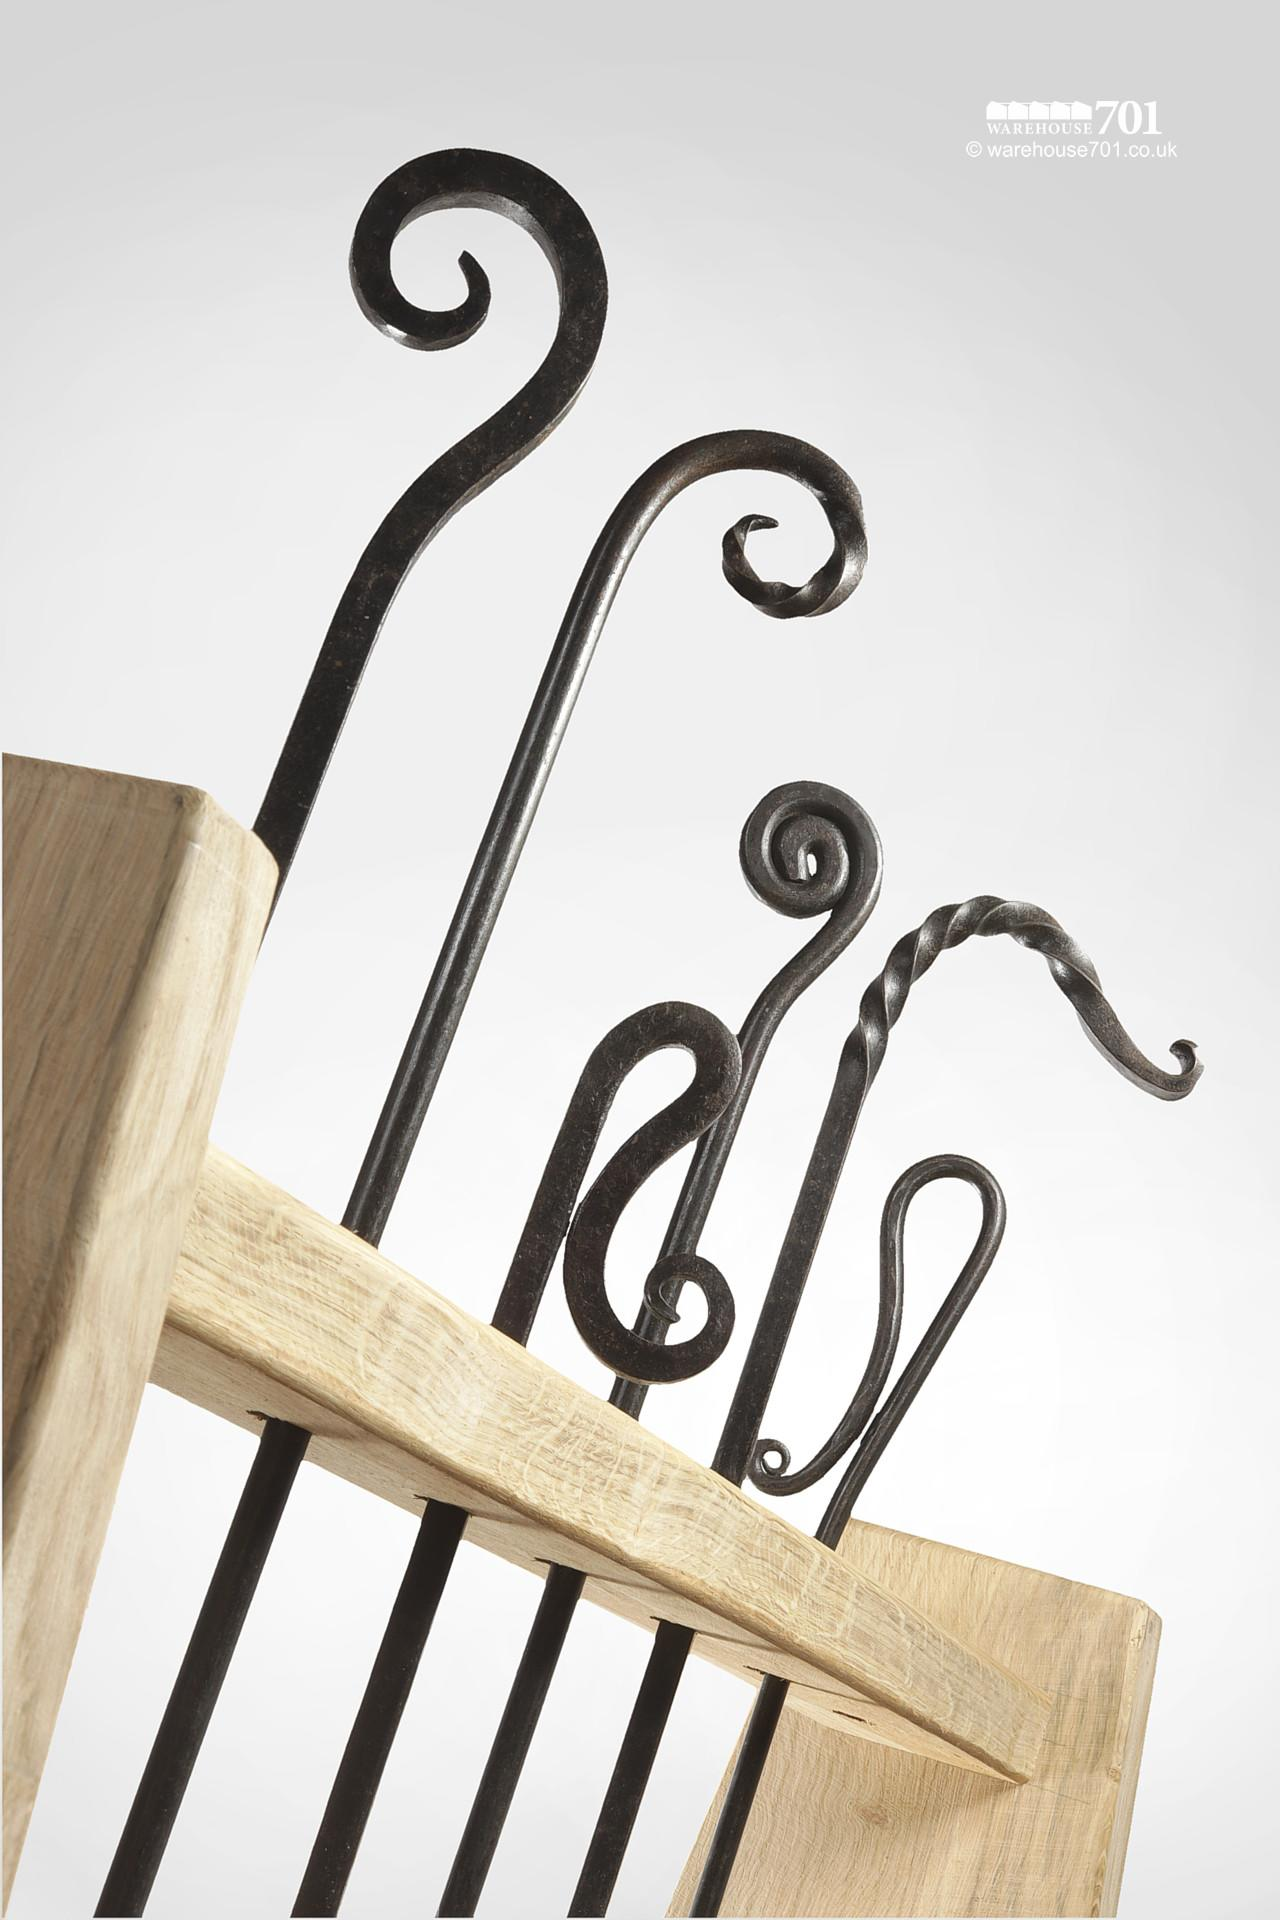 New Wrought Iron Blacksmith Made Decorative Fire Pokers